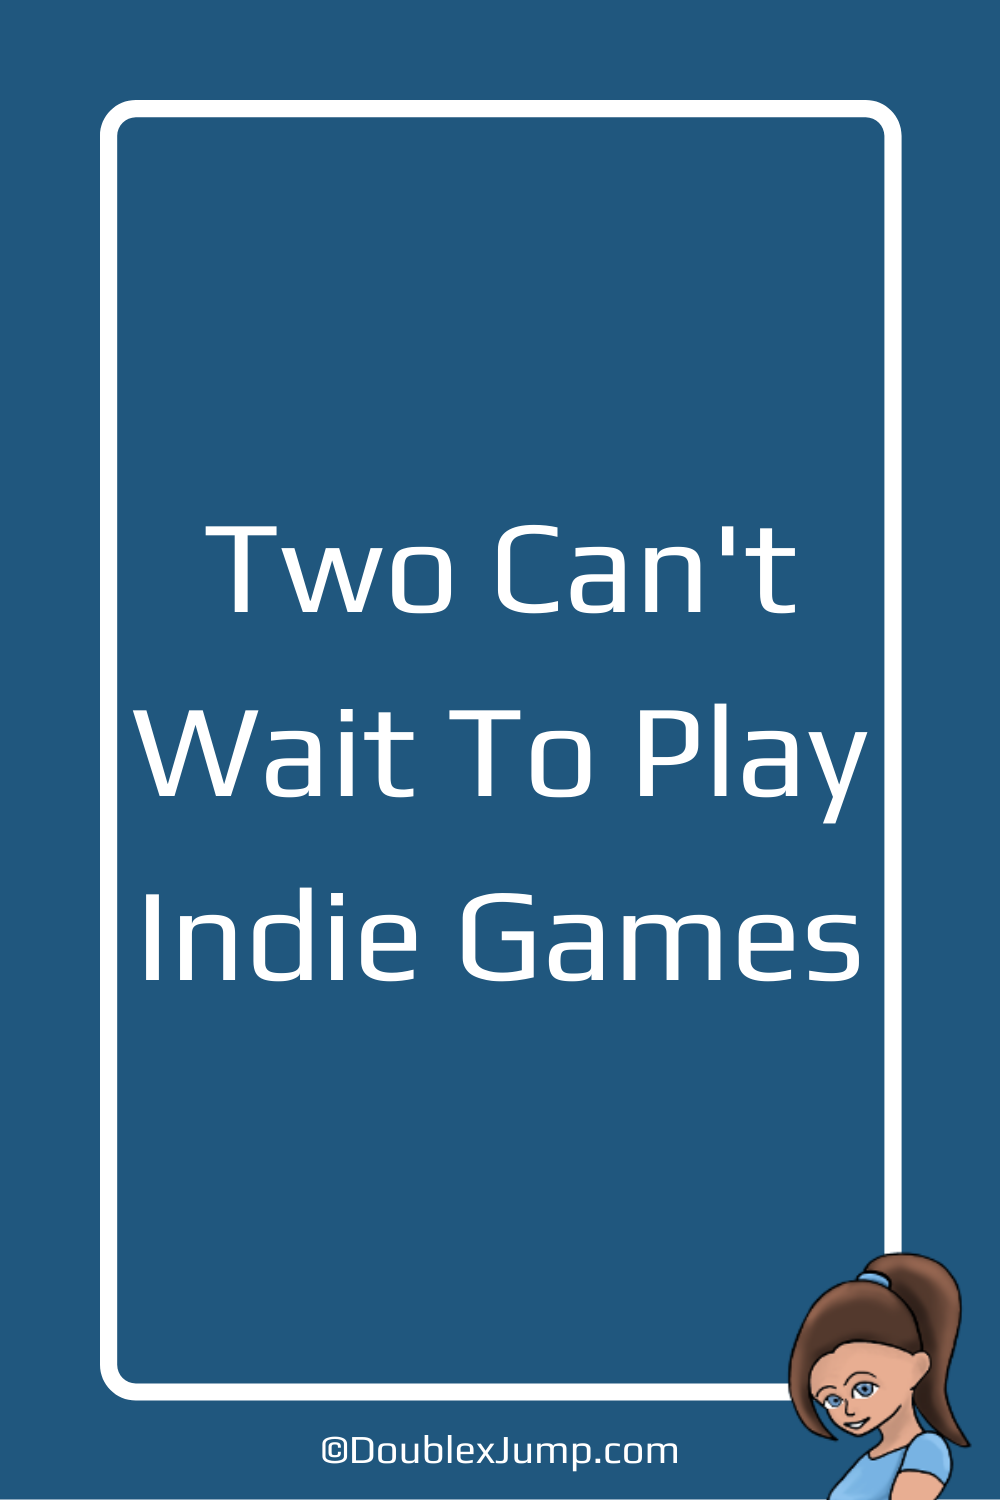 Two Can't Wait to Play Indie Games | Nintendo Switch | DoublexJump.com